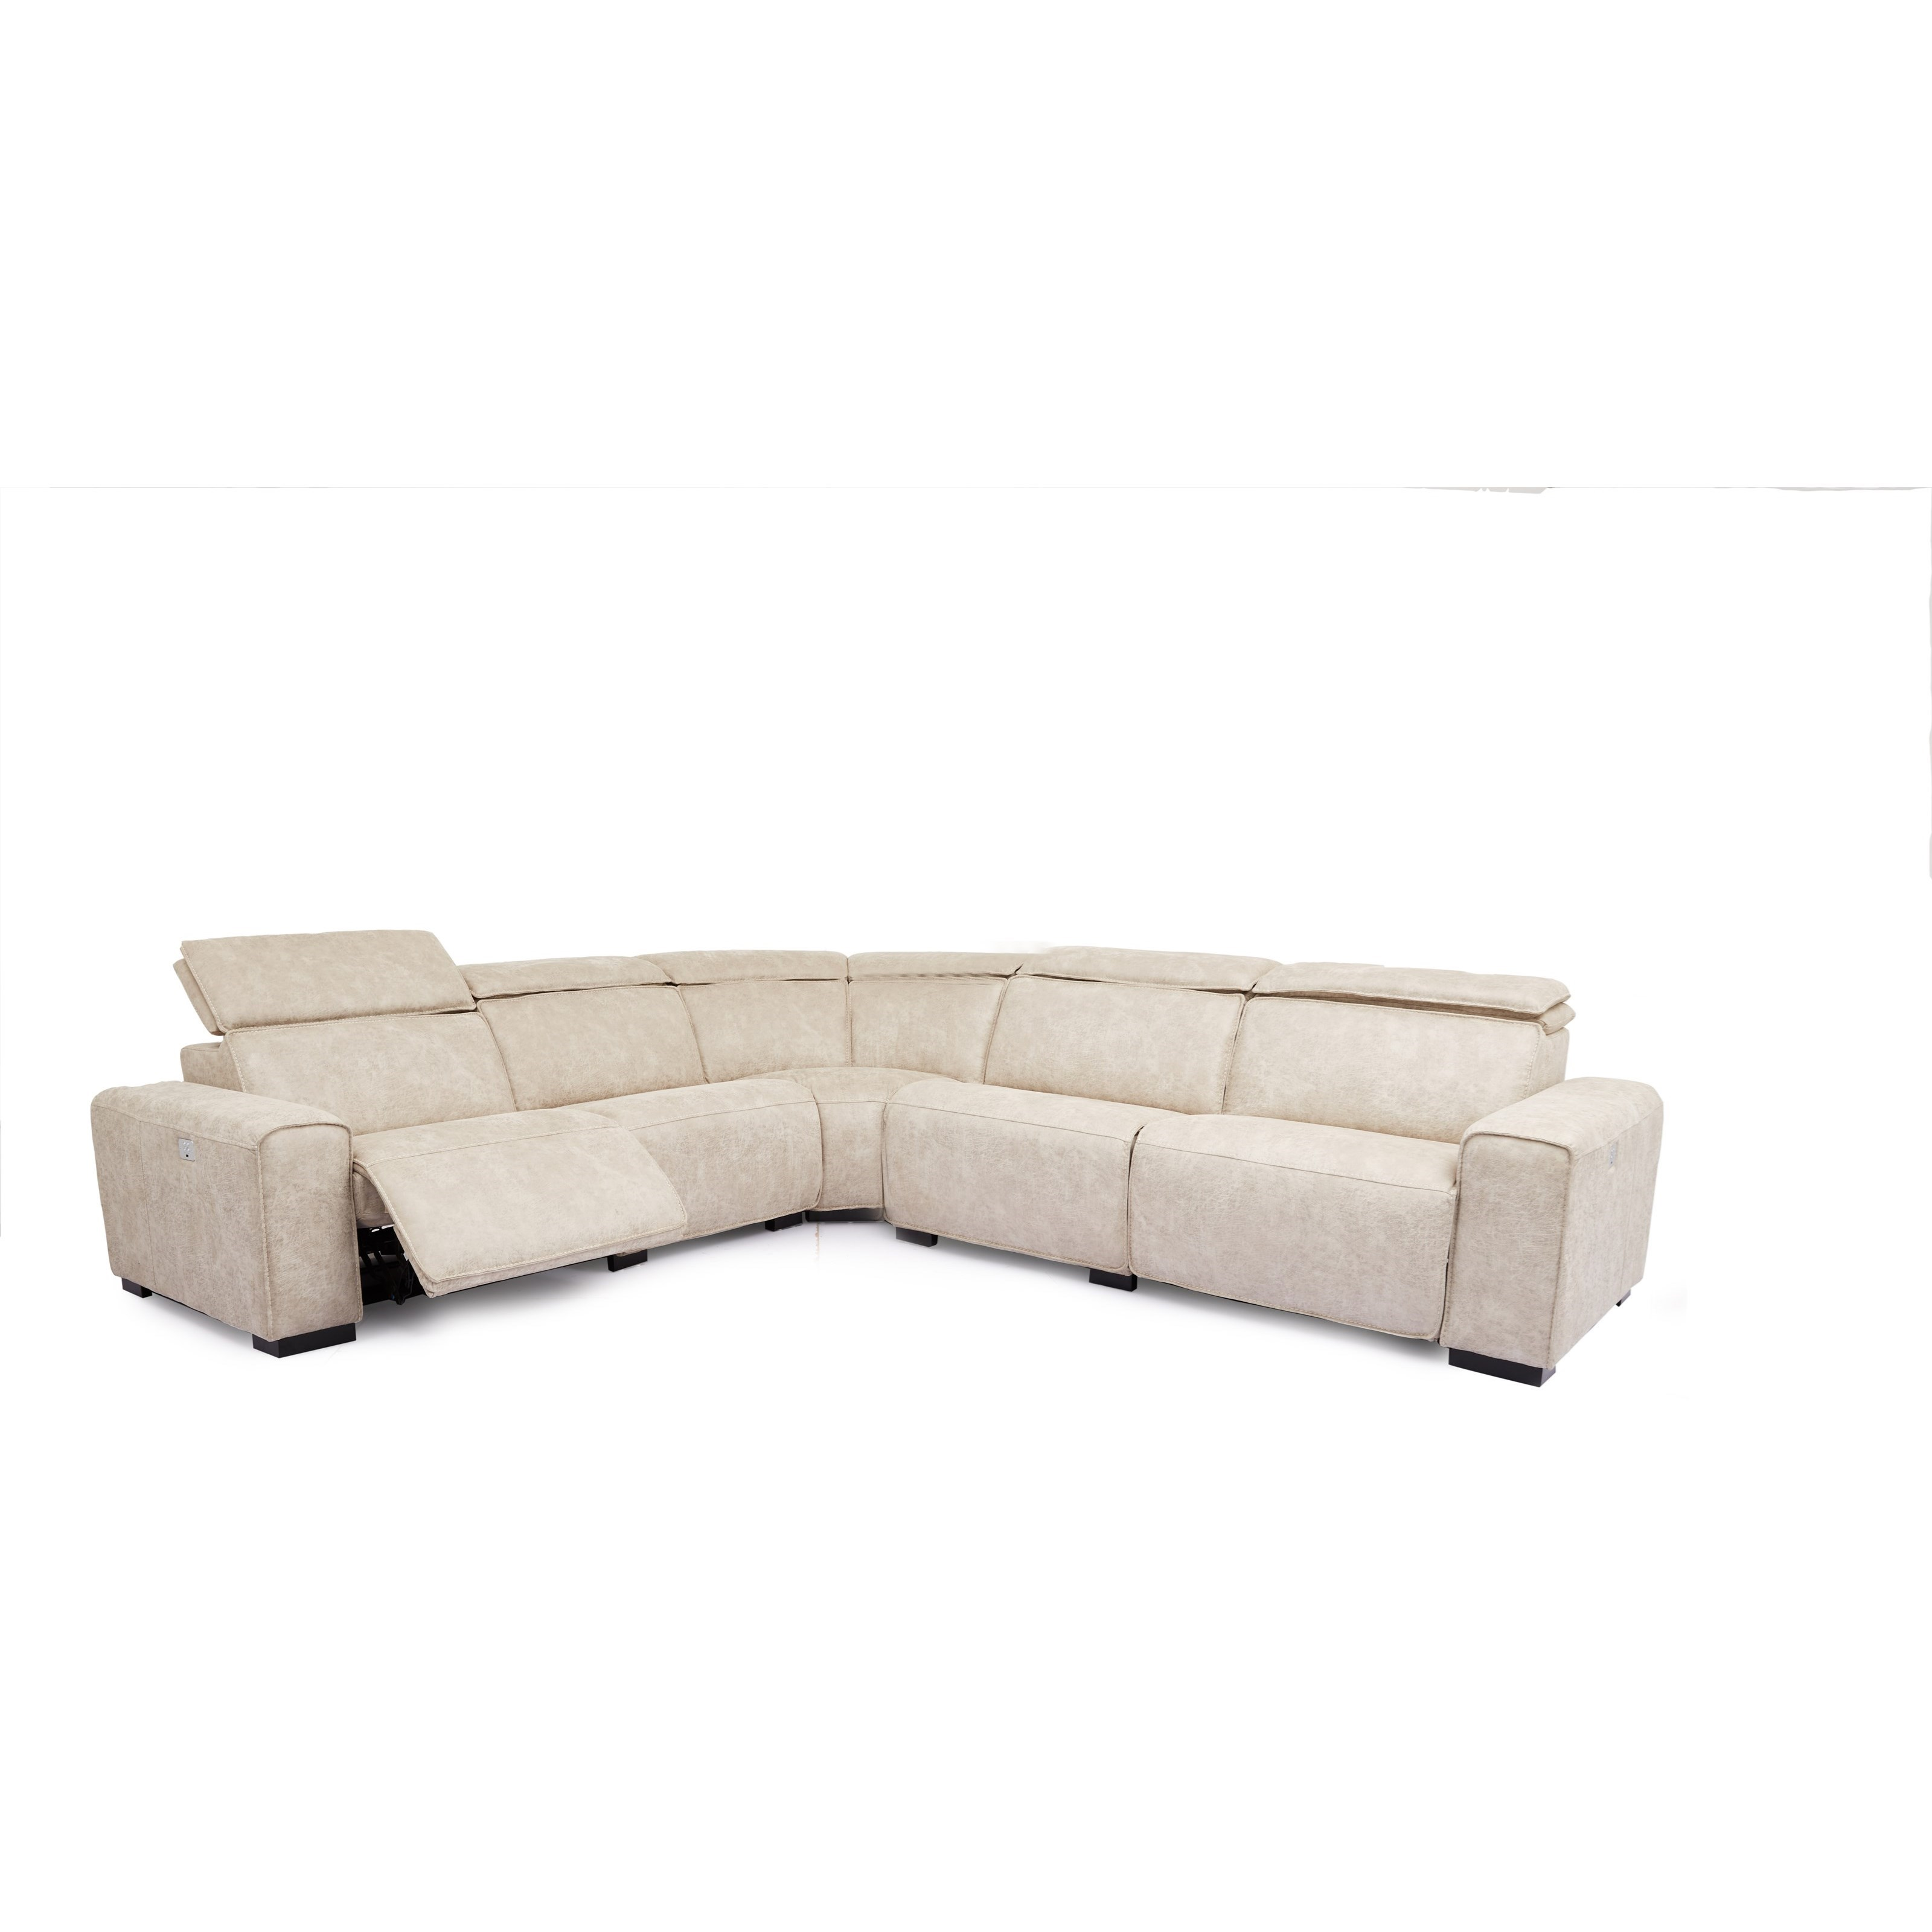 5558 Power Headrest Reclining Sectional by Cheers at Lagniappe Home Store